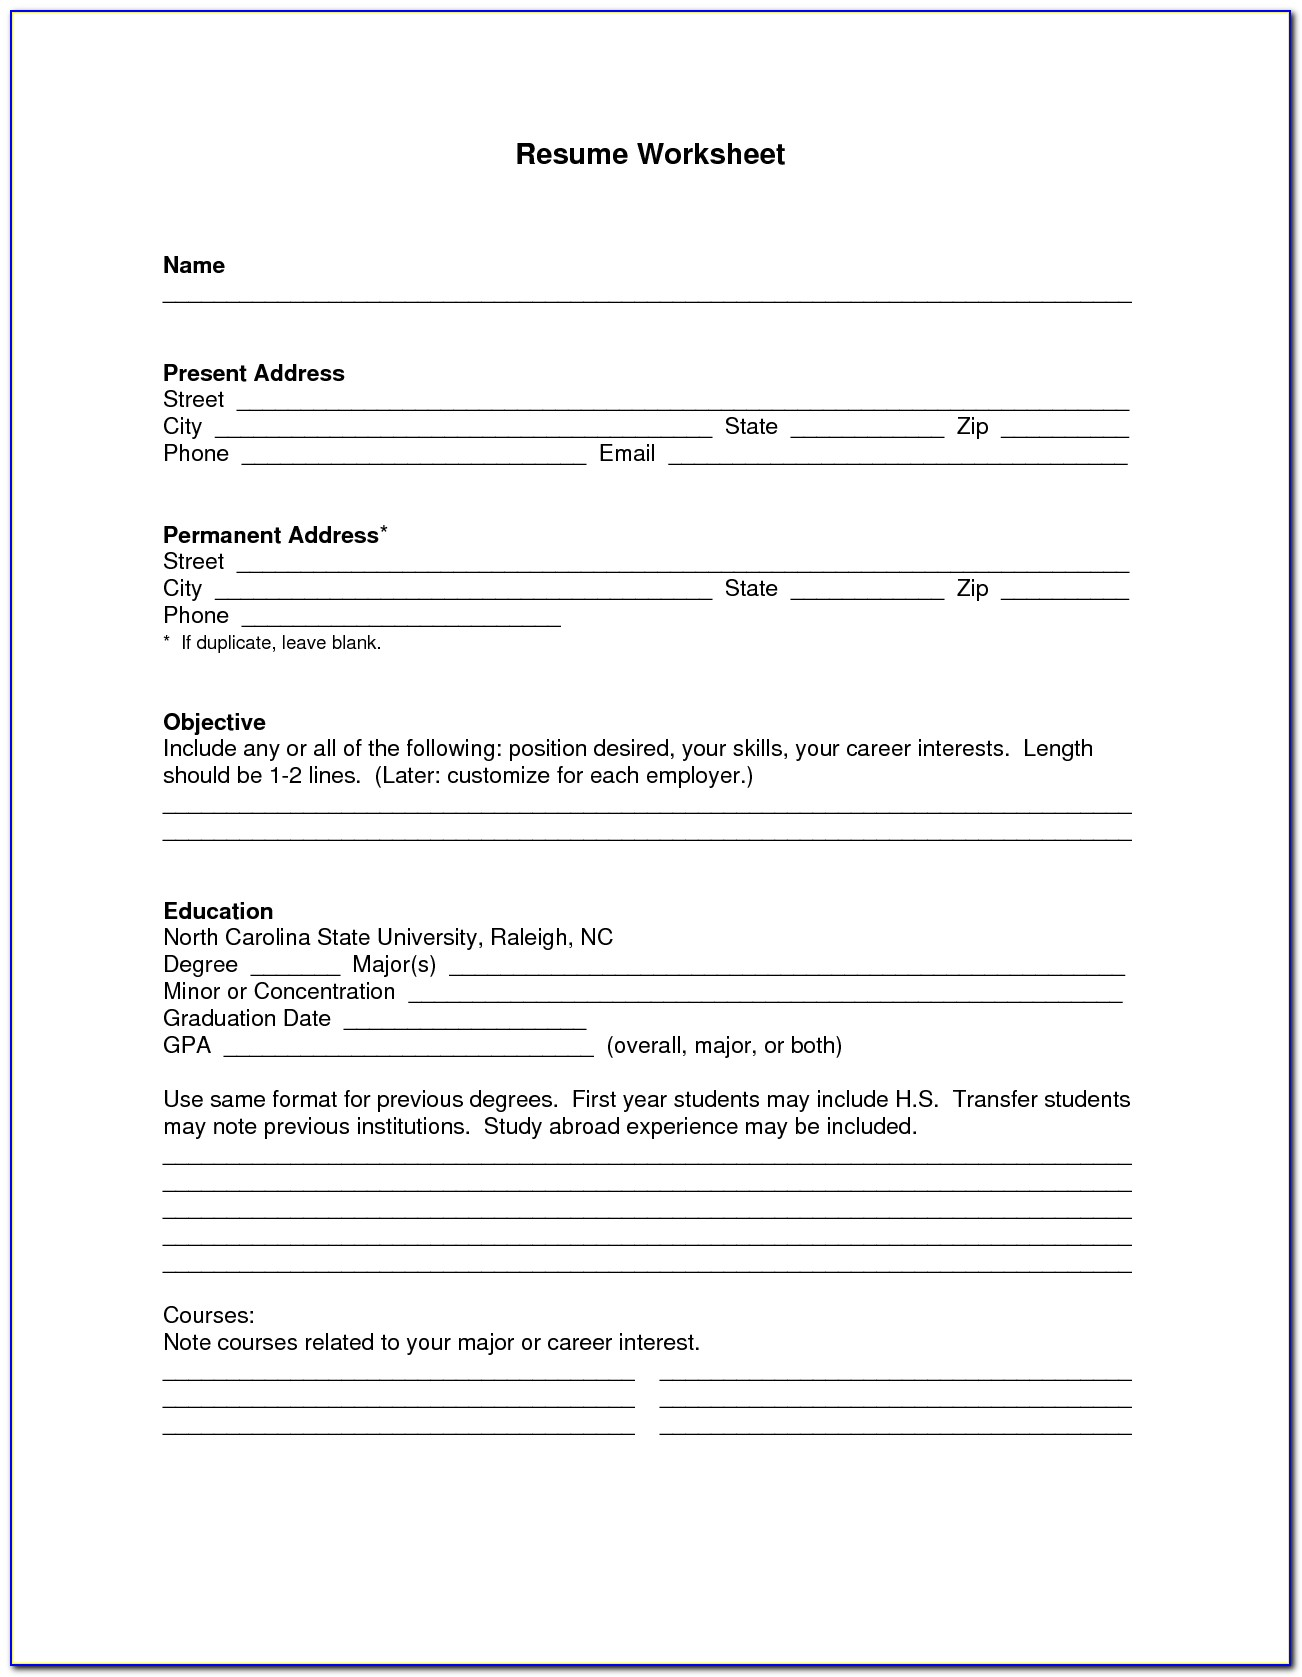 Blank Resume Form Pdf Vincegray2014